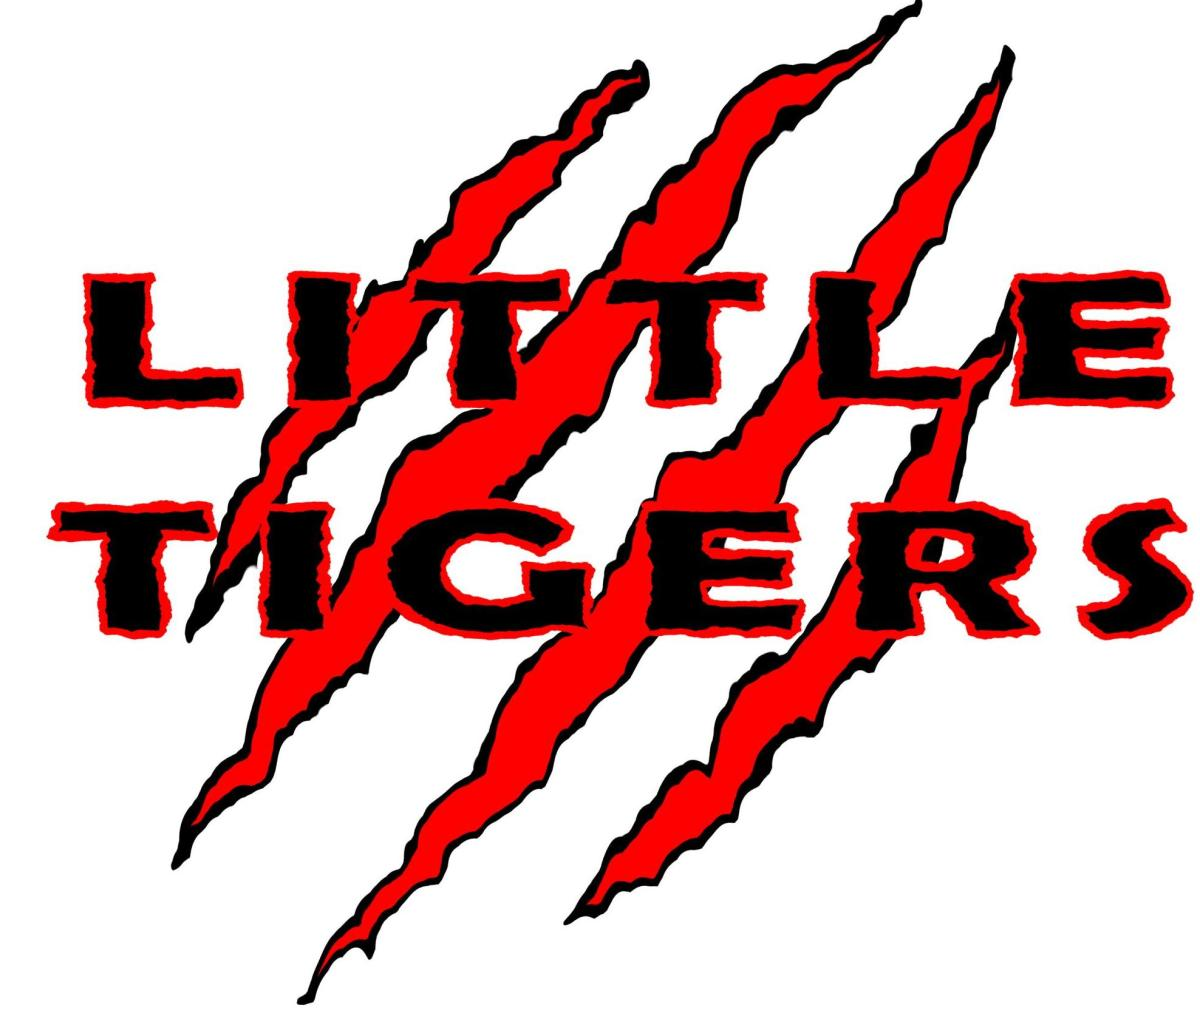 SUMMA MAXIMA LITTLE TIGERS